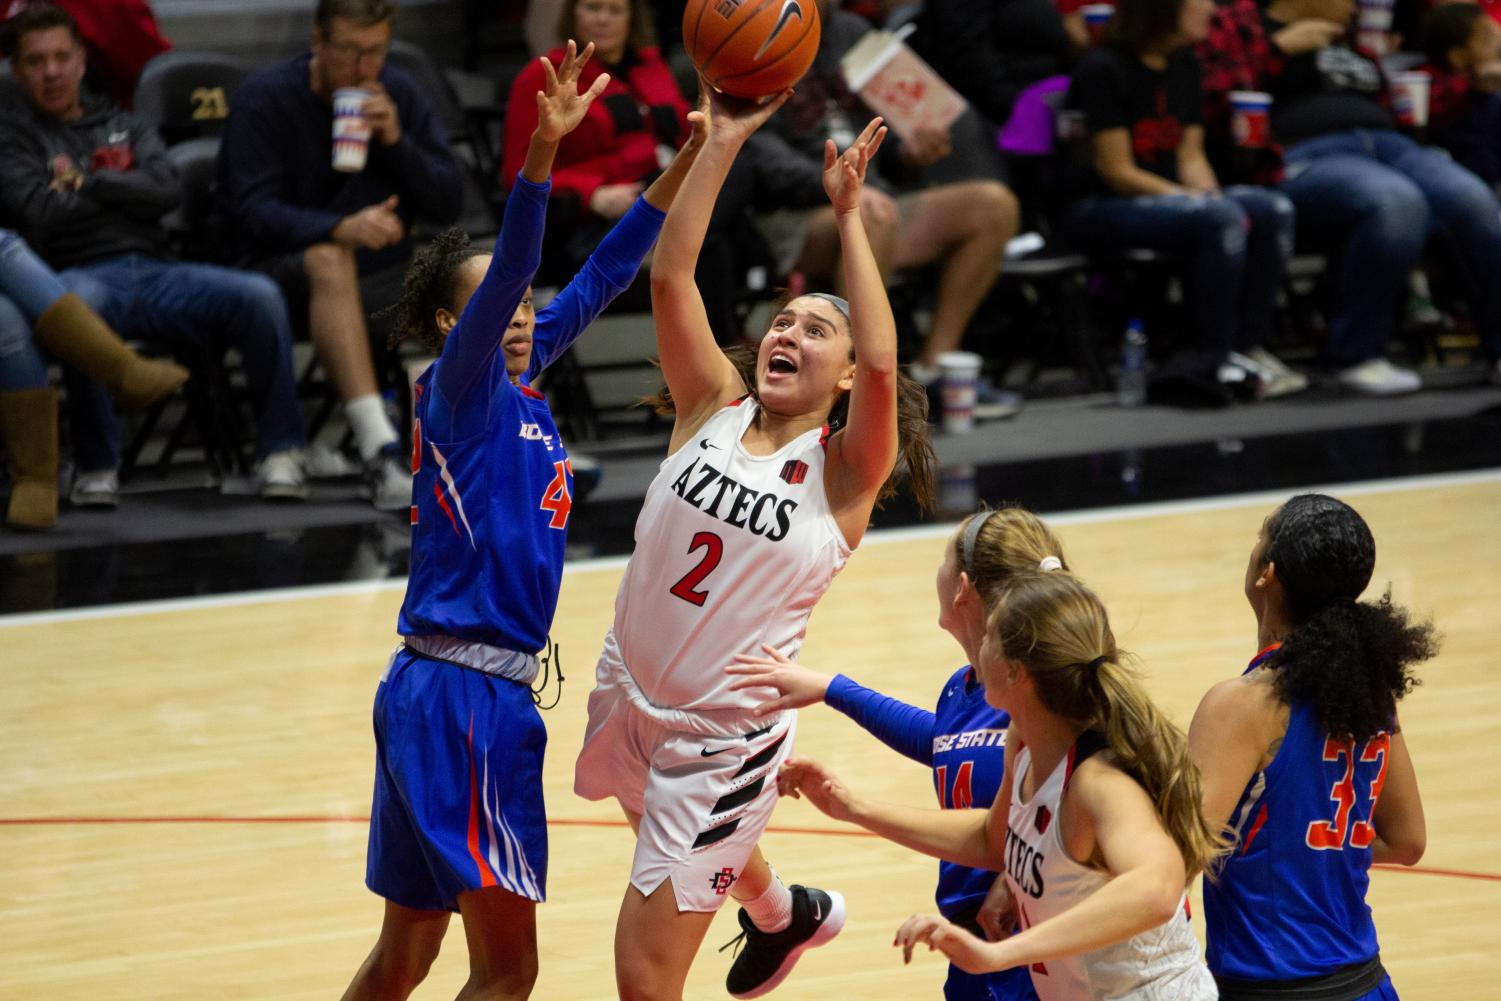 Then-freshman guard Sophia Ramos attempts a shot during the Aztecs 69-66 loss to Boise State on Jan. 5 at Viejas Arena.